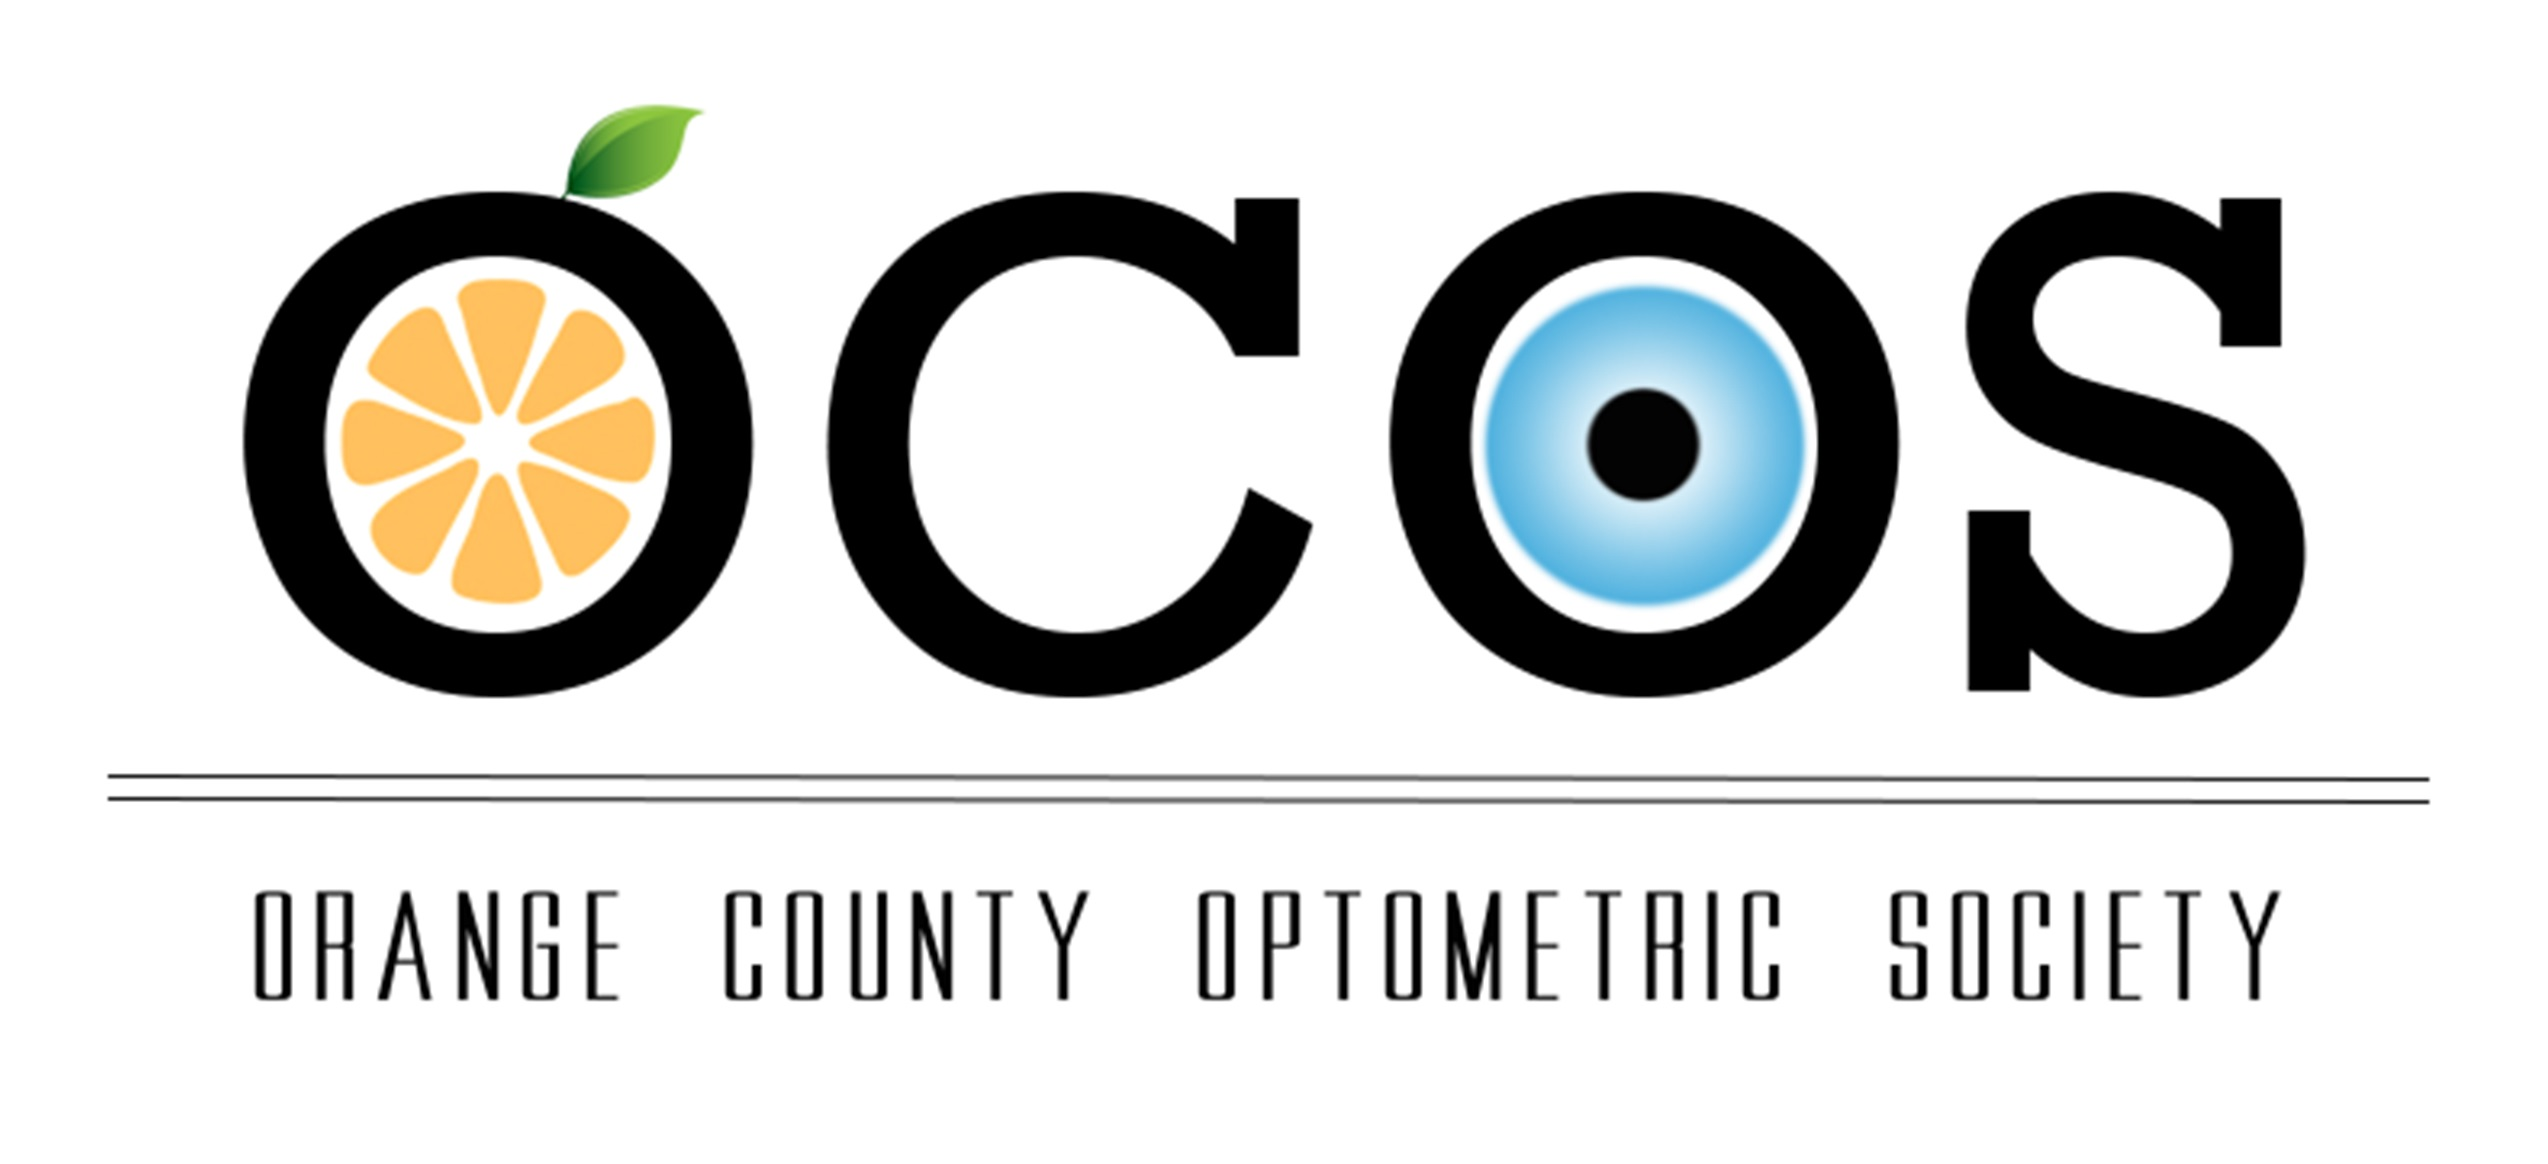 Orange County Optometric Society